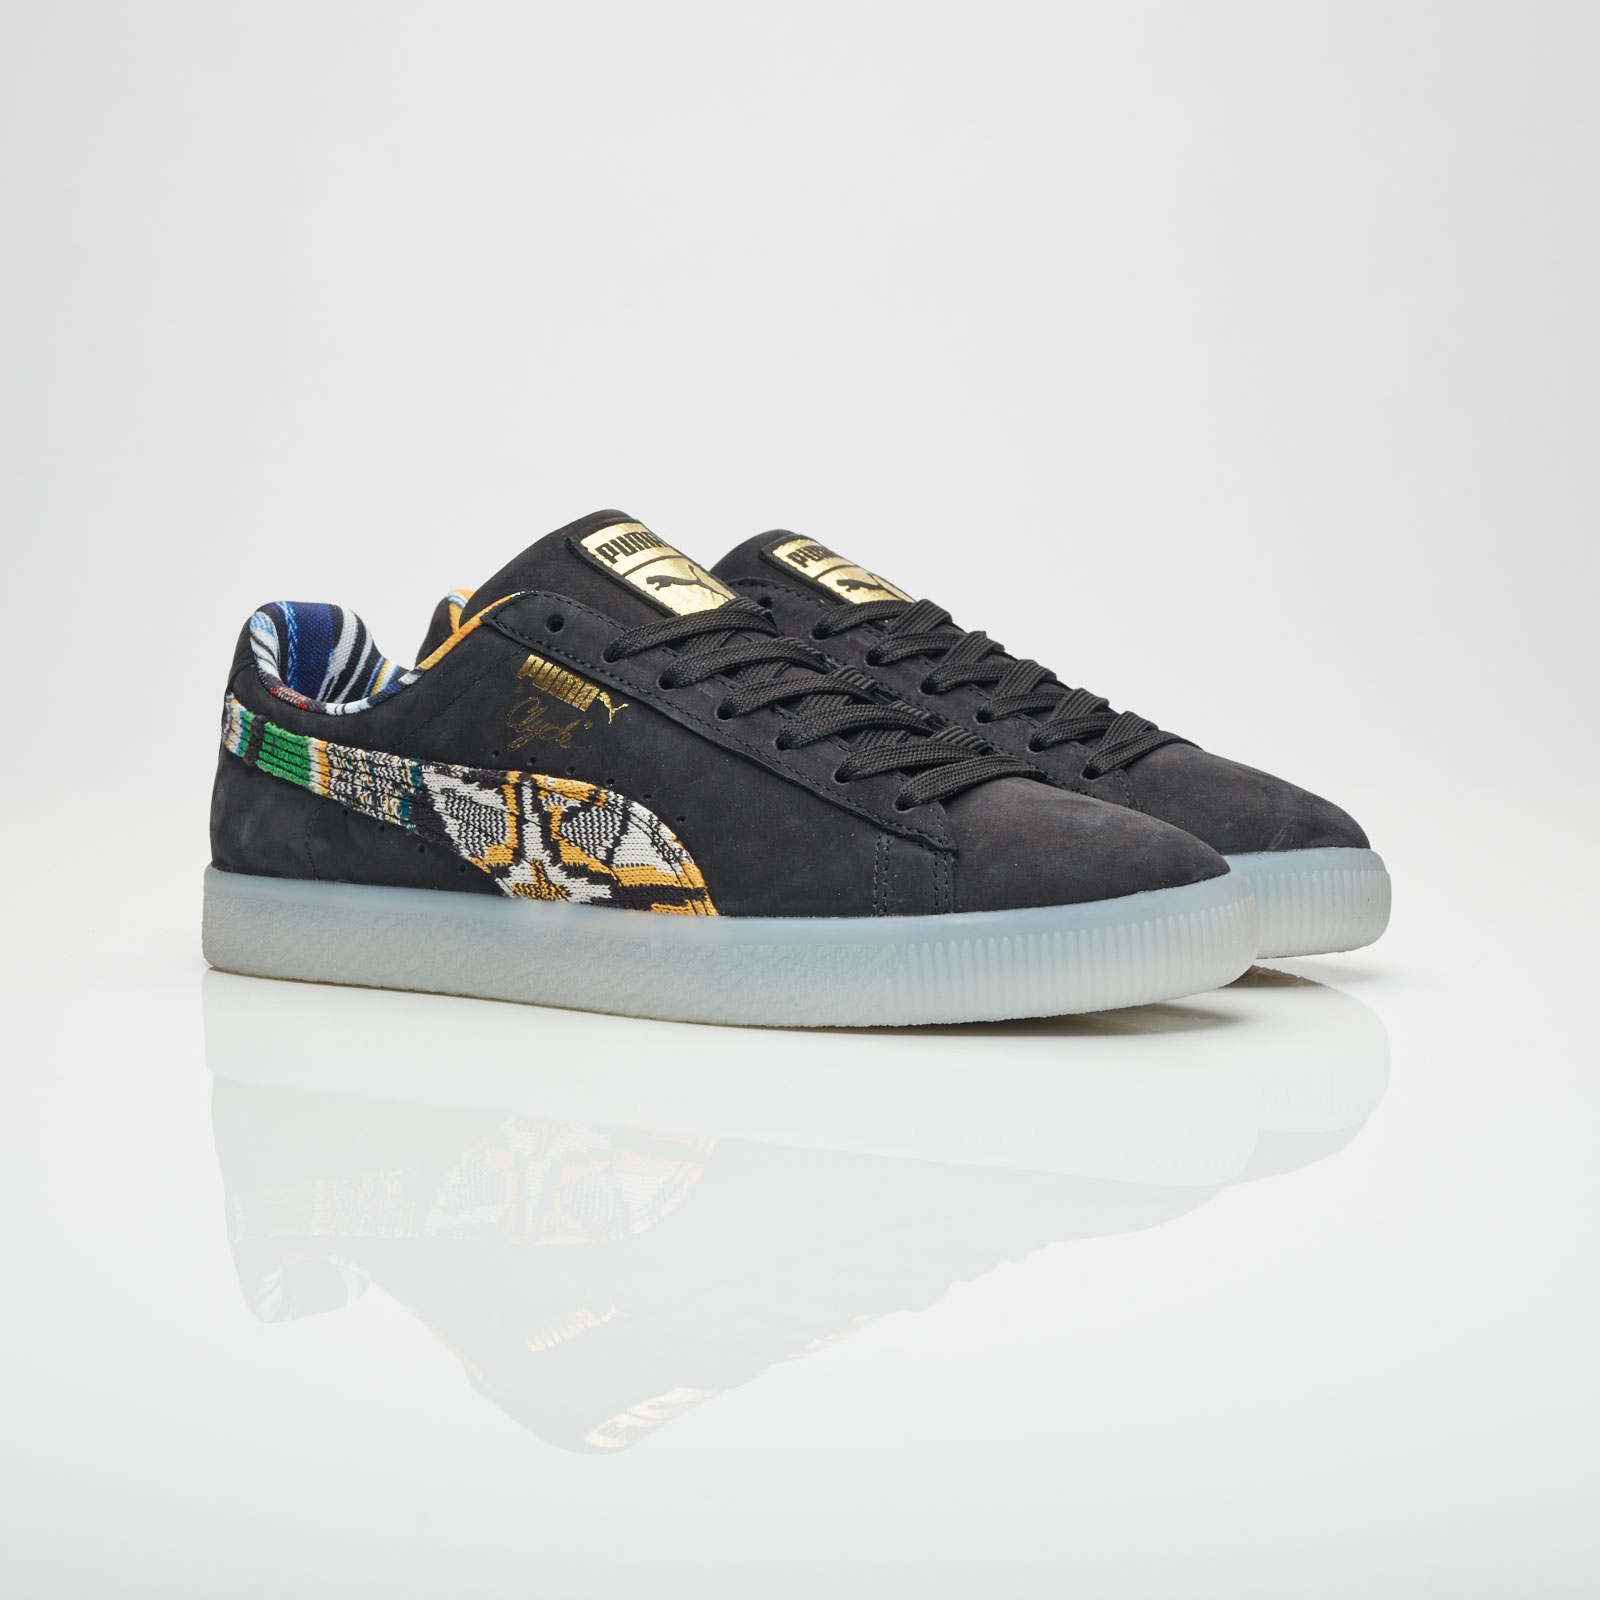 official photos 6adec c586f Puma Clyde Coogi FS - 364908-01 - Sneakersnstuff | sneakers ...